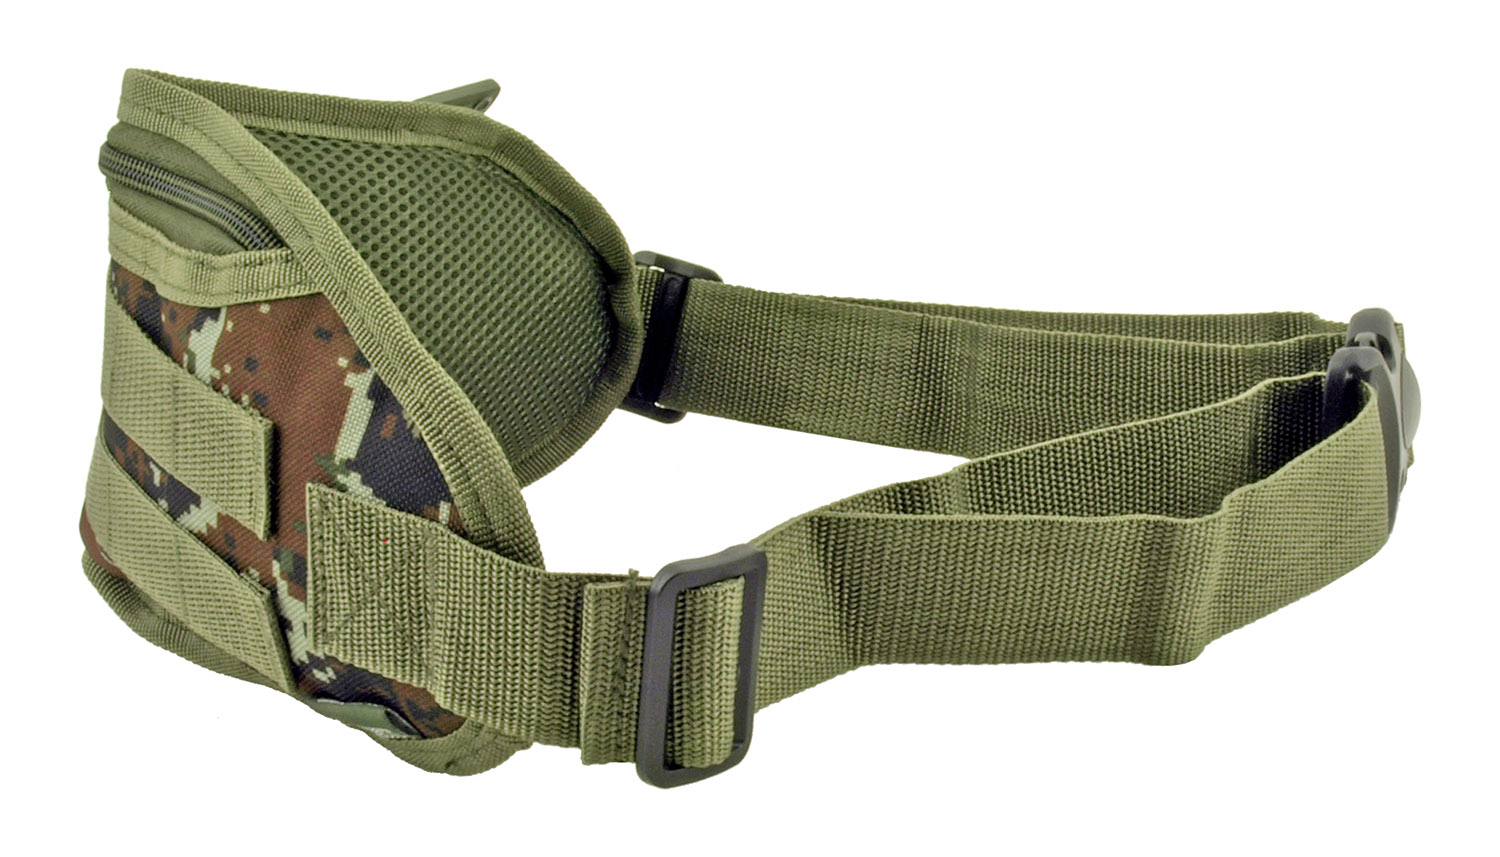 Tactical Fanny Pack Hip Bag with Molle Strap - Green Digital Camo